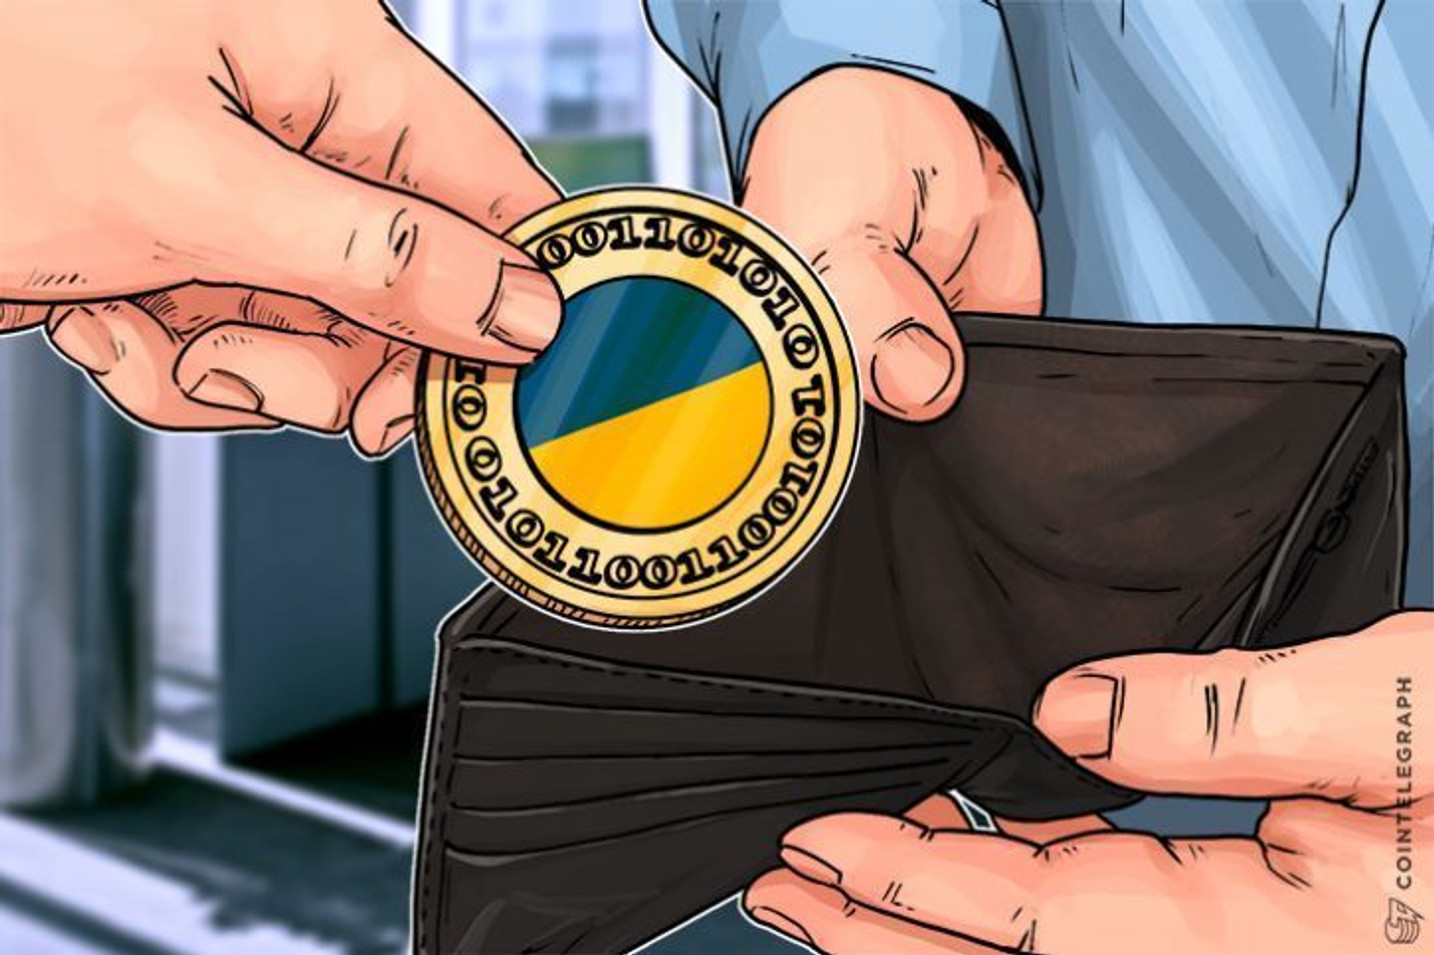 Ukraine Wants A National Digital Currency, Not Its Own Cryptocurrency